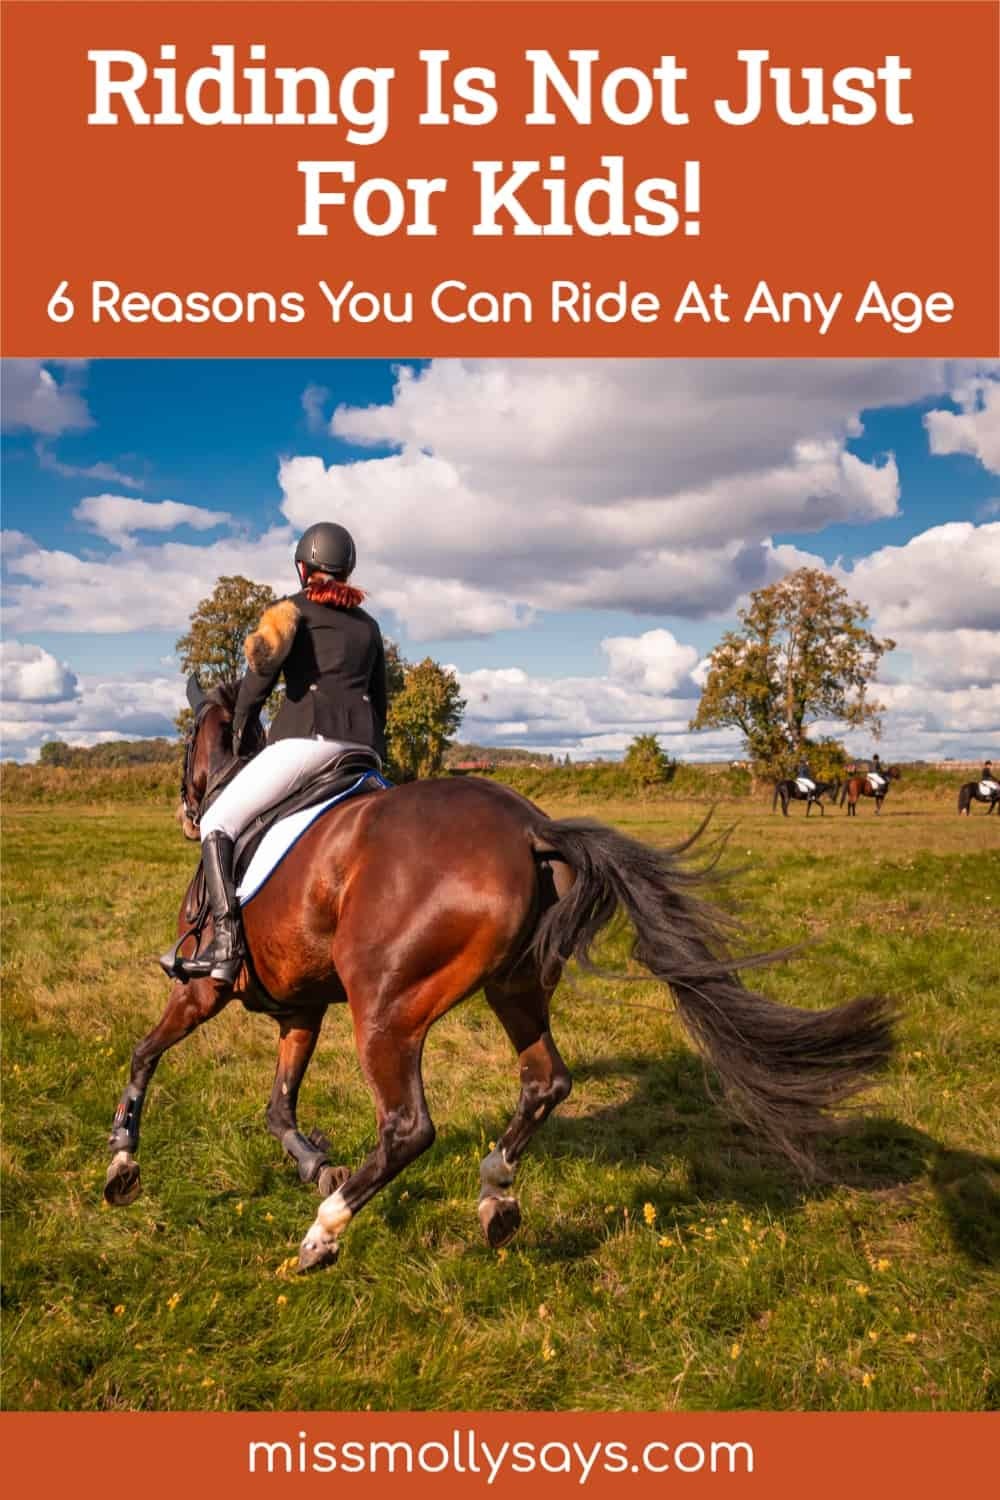 Riding Is Not Just For Kids! 6 Reasons You Can Ride At Any Age